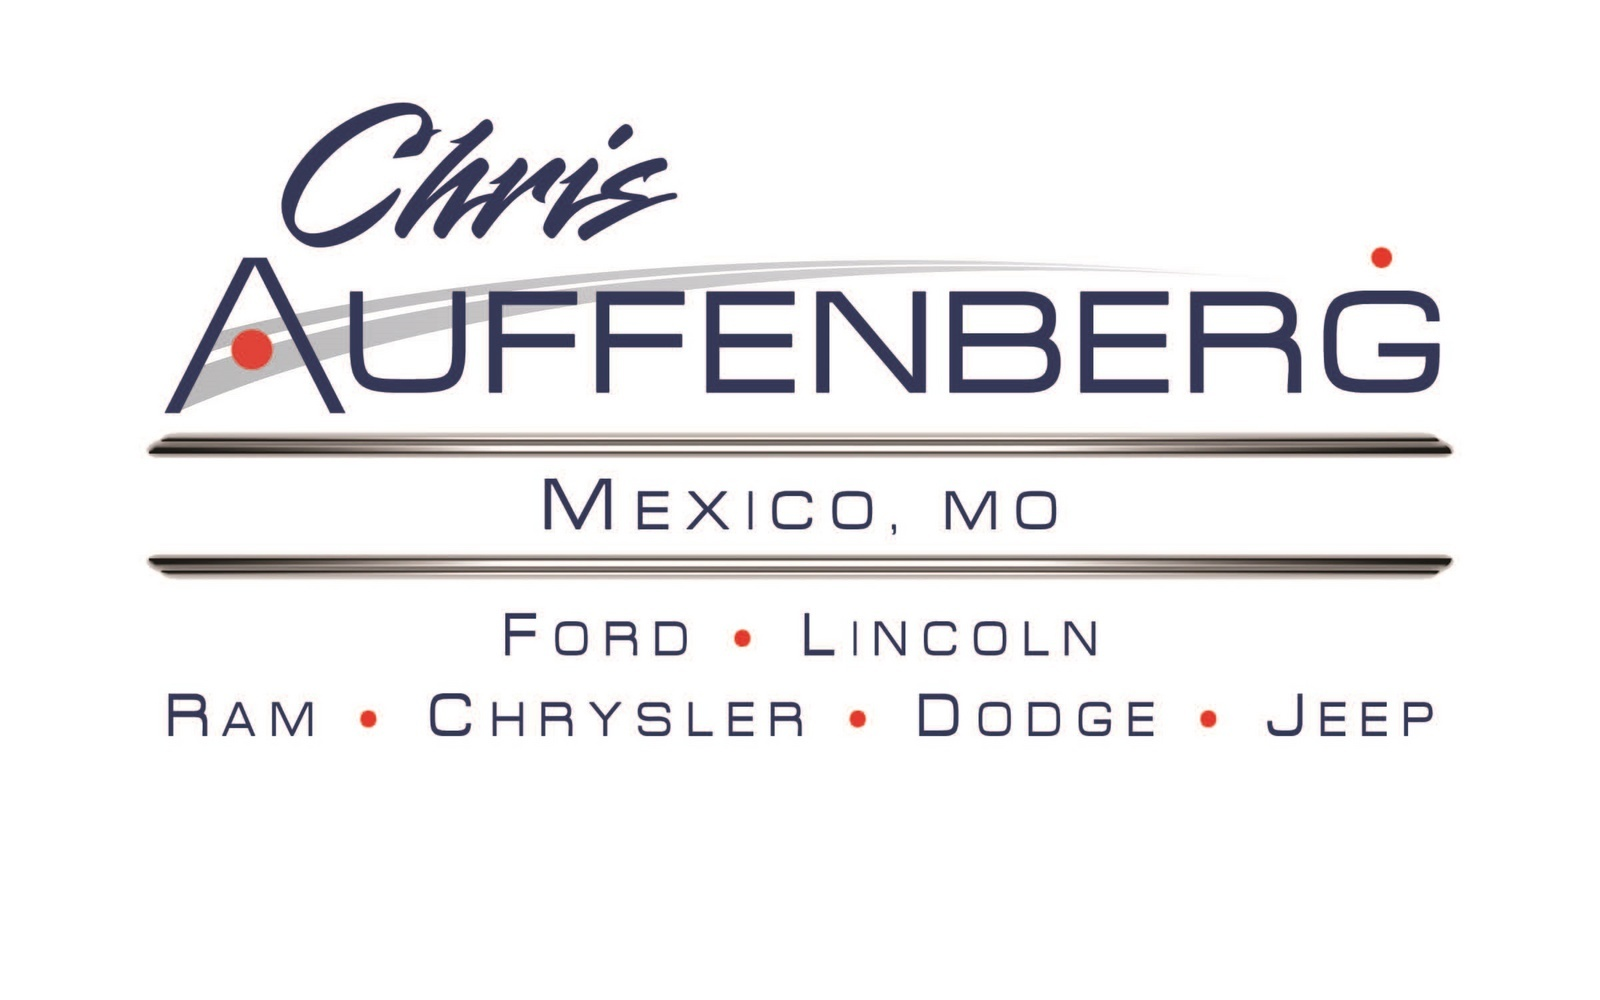 Auffenberg motor company of mexico mexico mo read consumer reviews browse used and new cars for sale